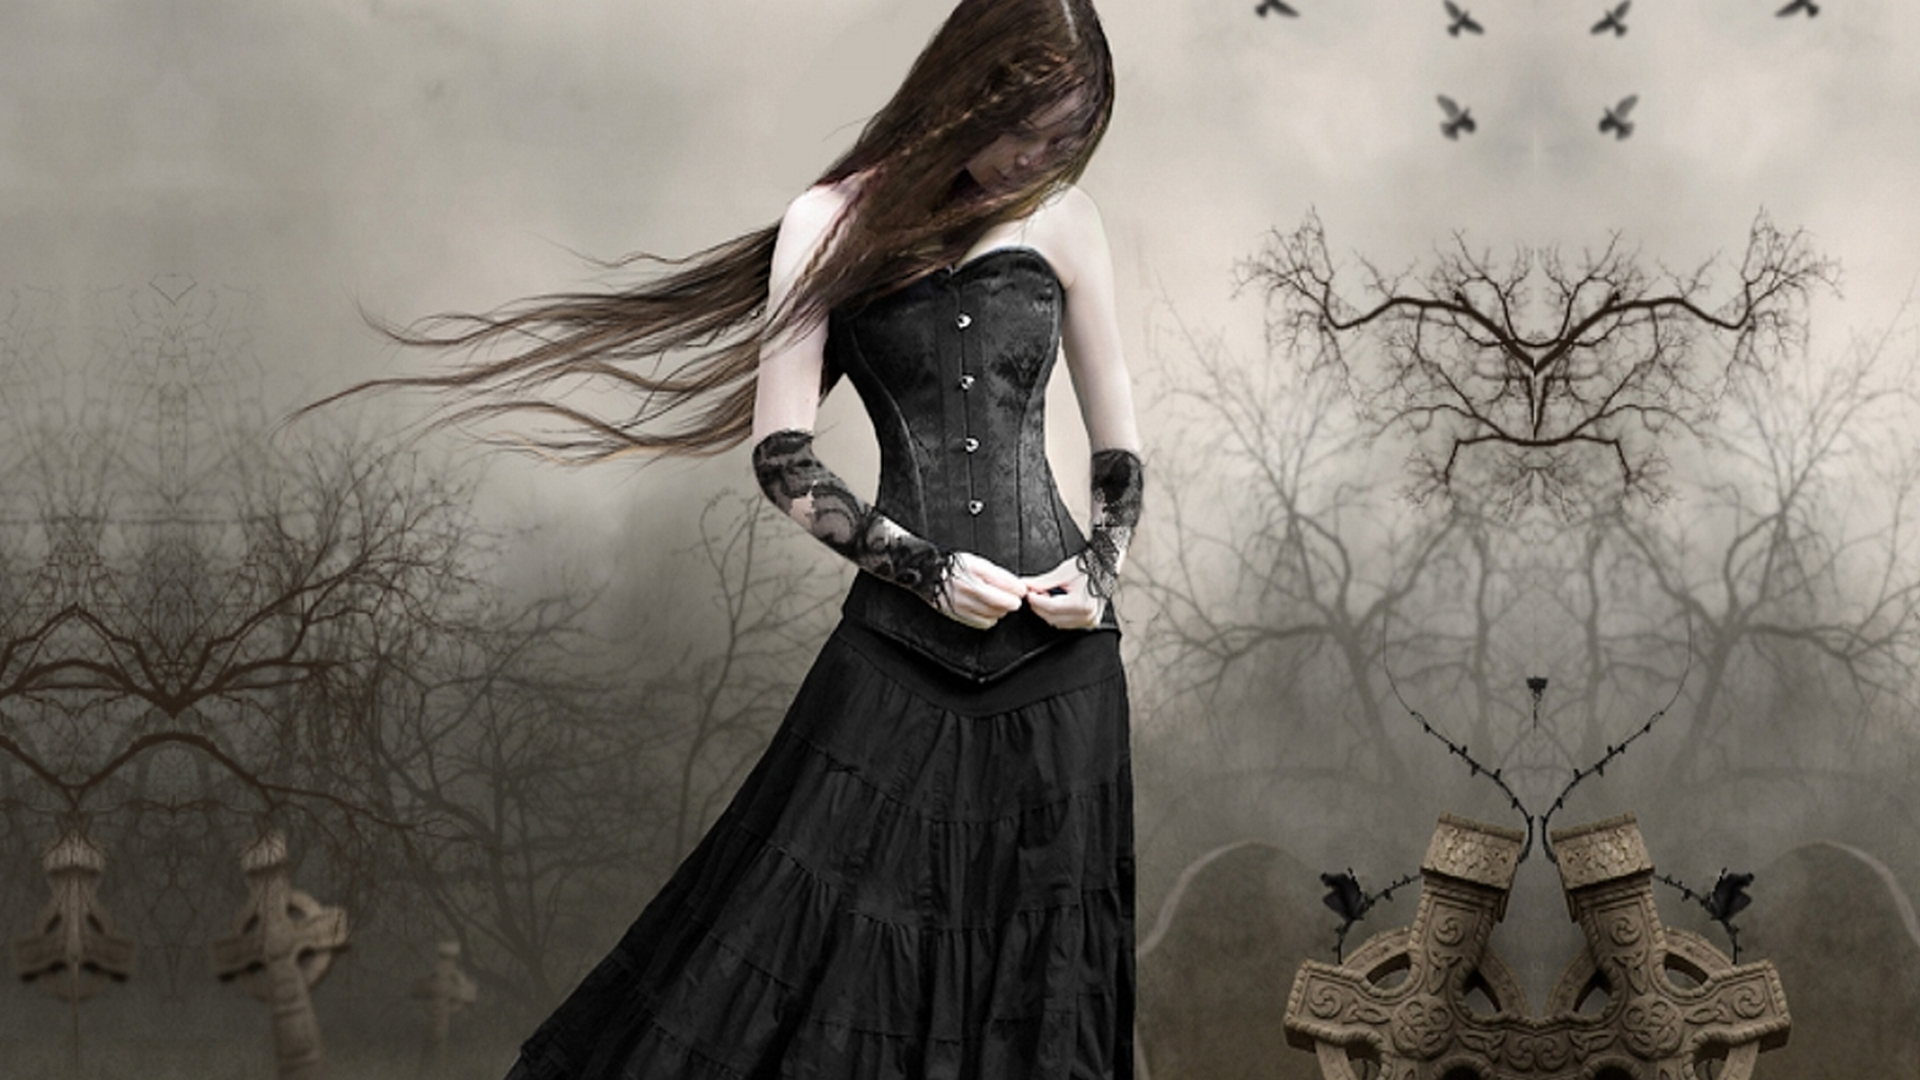 Download Dark Gothic Wallpaper 1920x1080 Wallpoper 222599 1920x1080